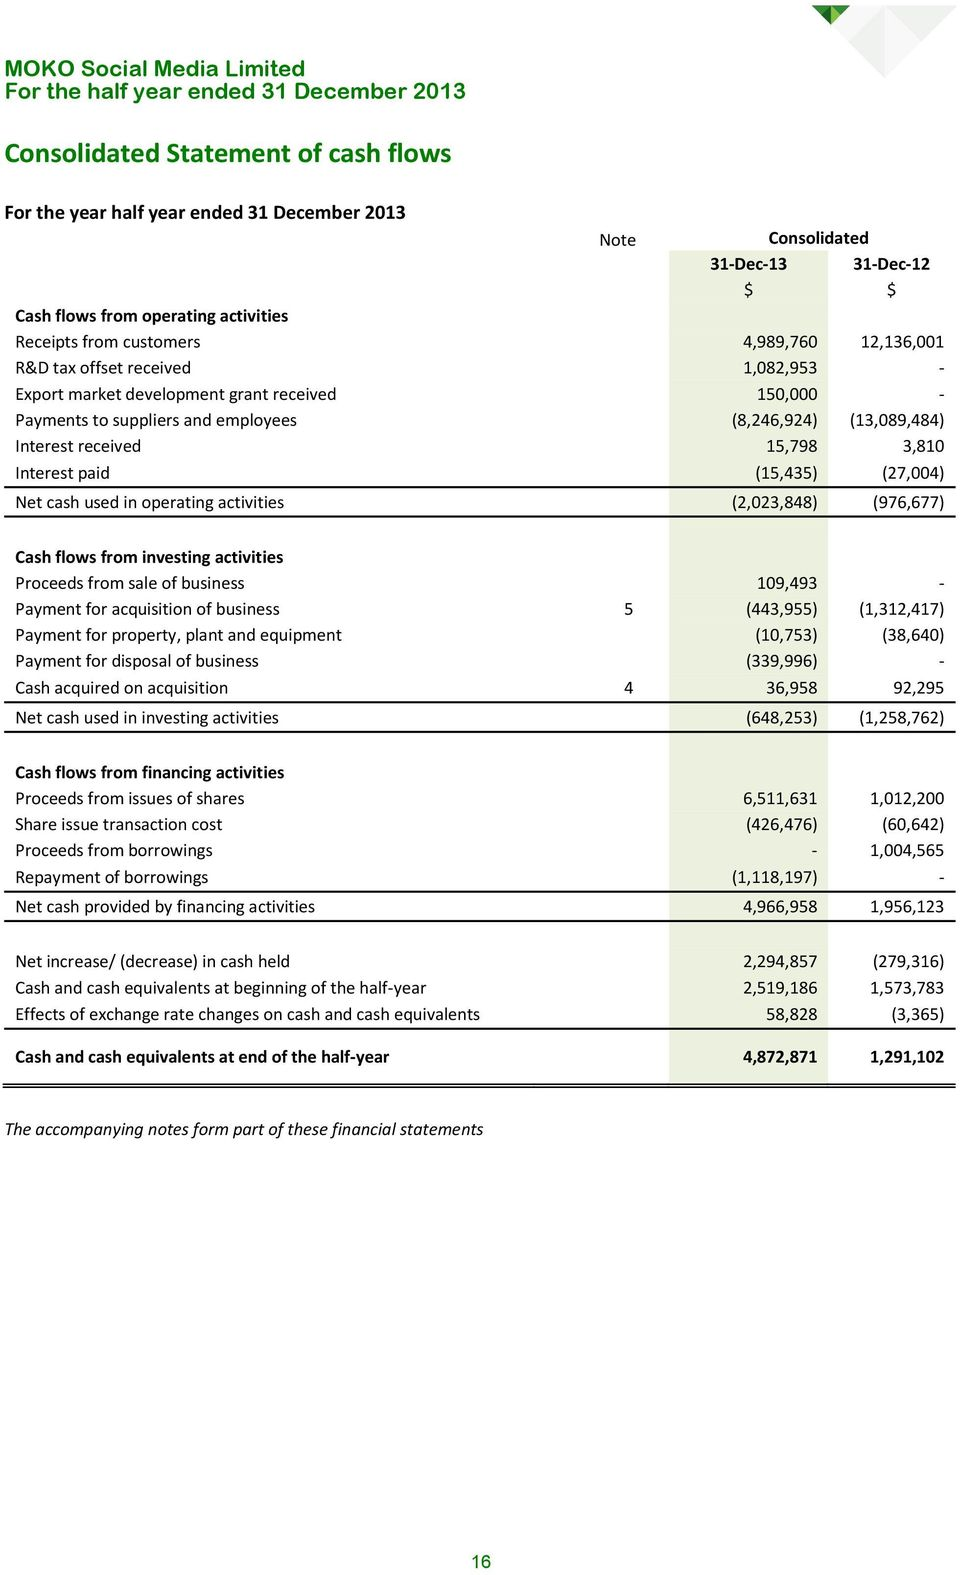 paid (15,435) (27,004) Net cash used in operating activities (2,023,848) (976,677) Cash flows from investing activities Proceeds from sale of business 109,493 - Payment for acquisition of business 5